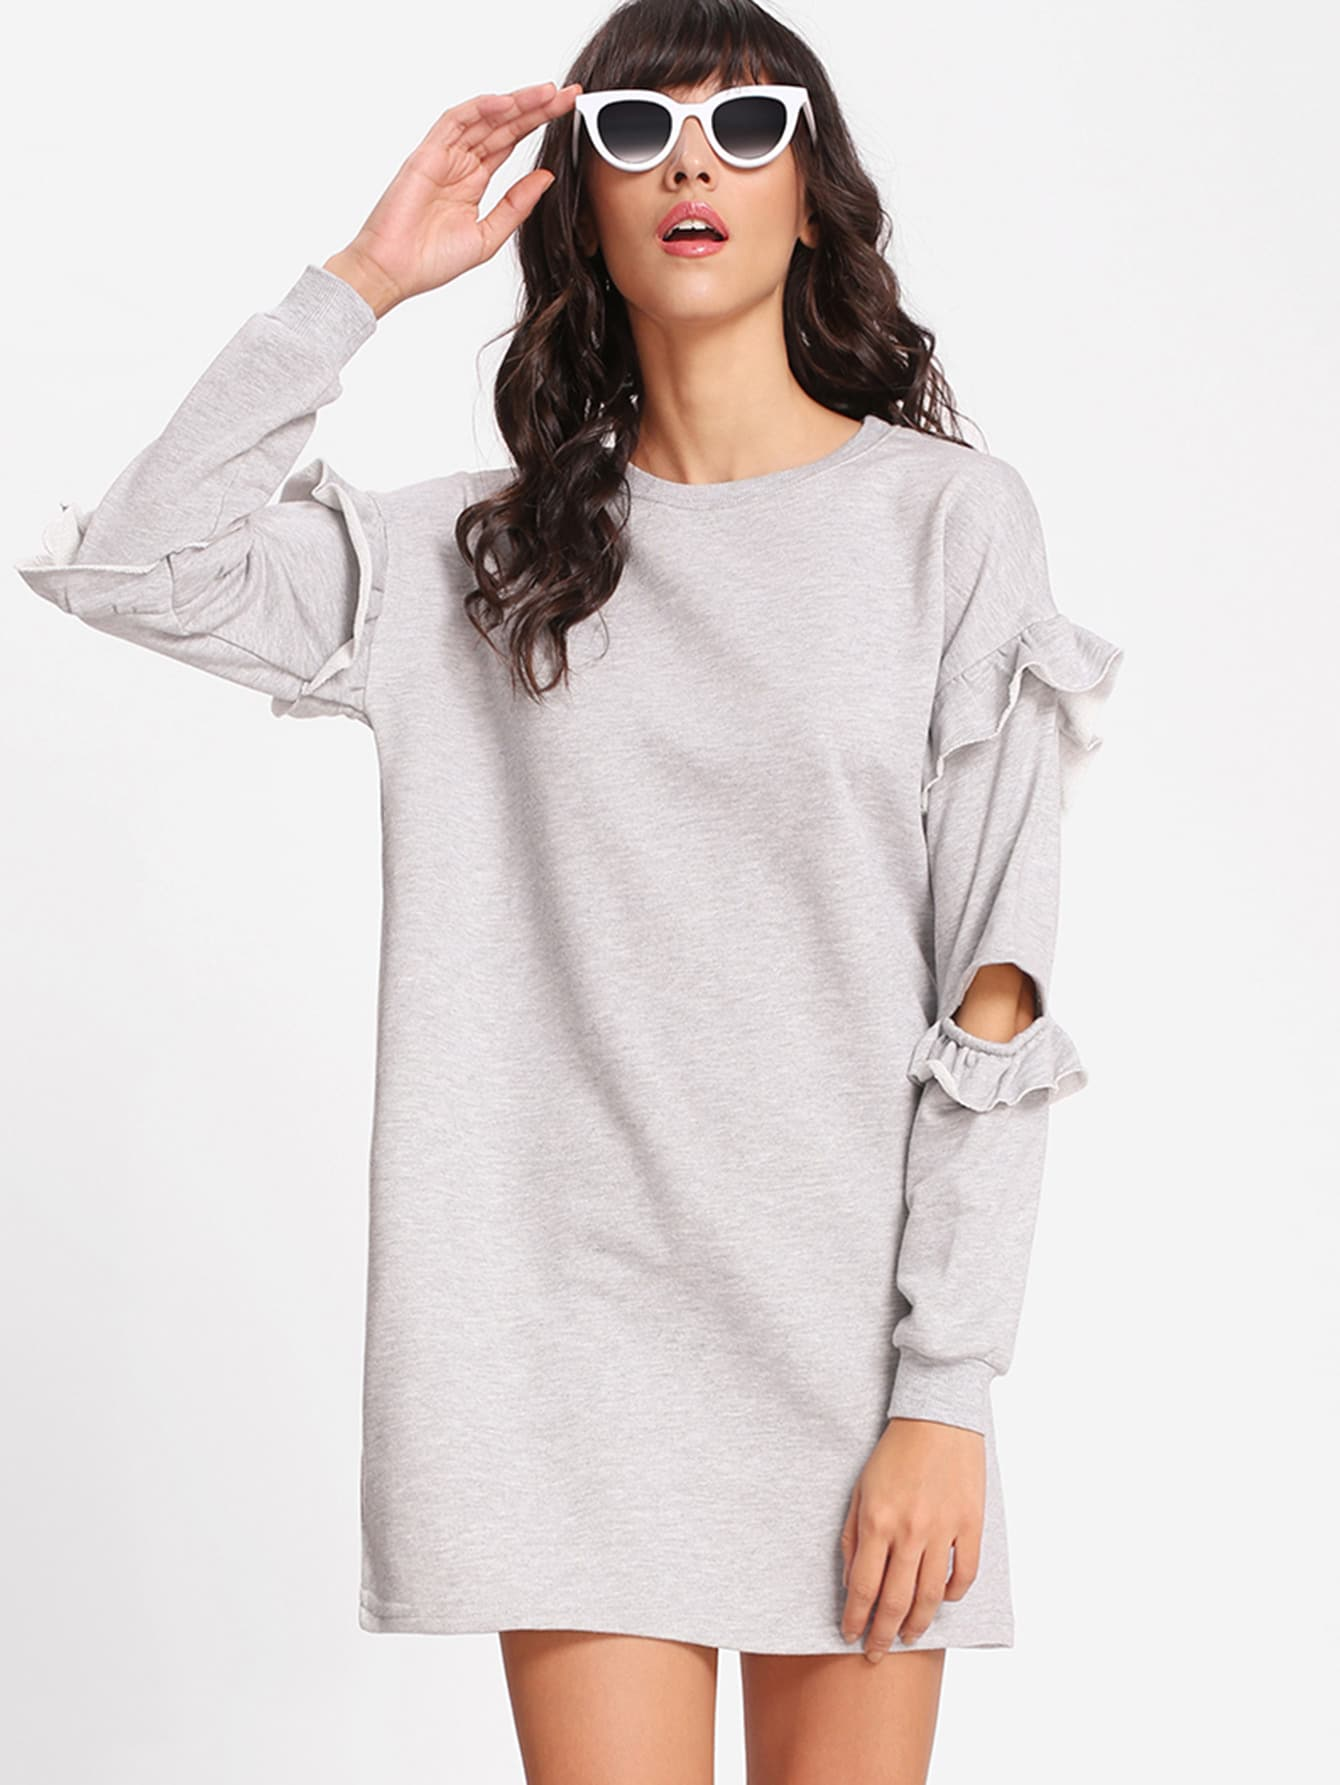 Elbow Cut Out Frill Trim Sweatshirt Dress frill layered pearl detail sweatshirt dress